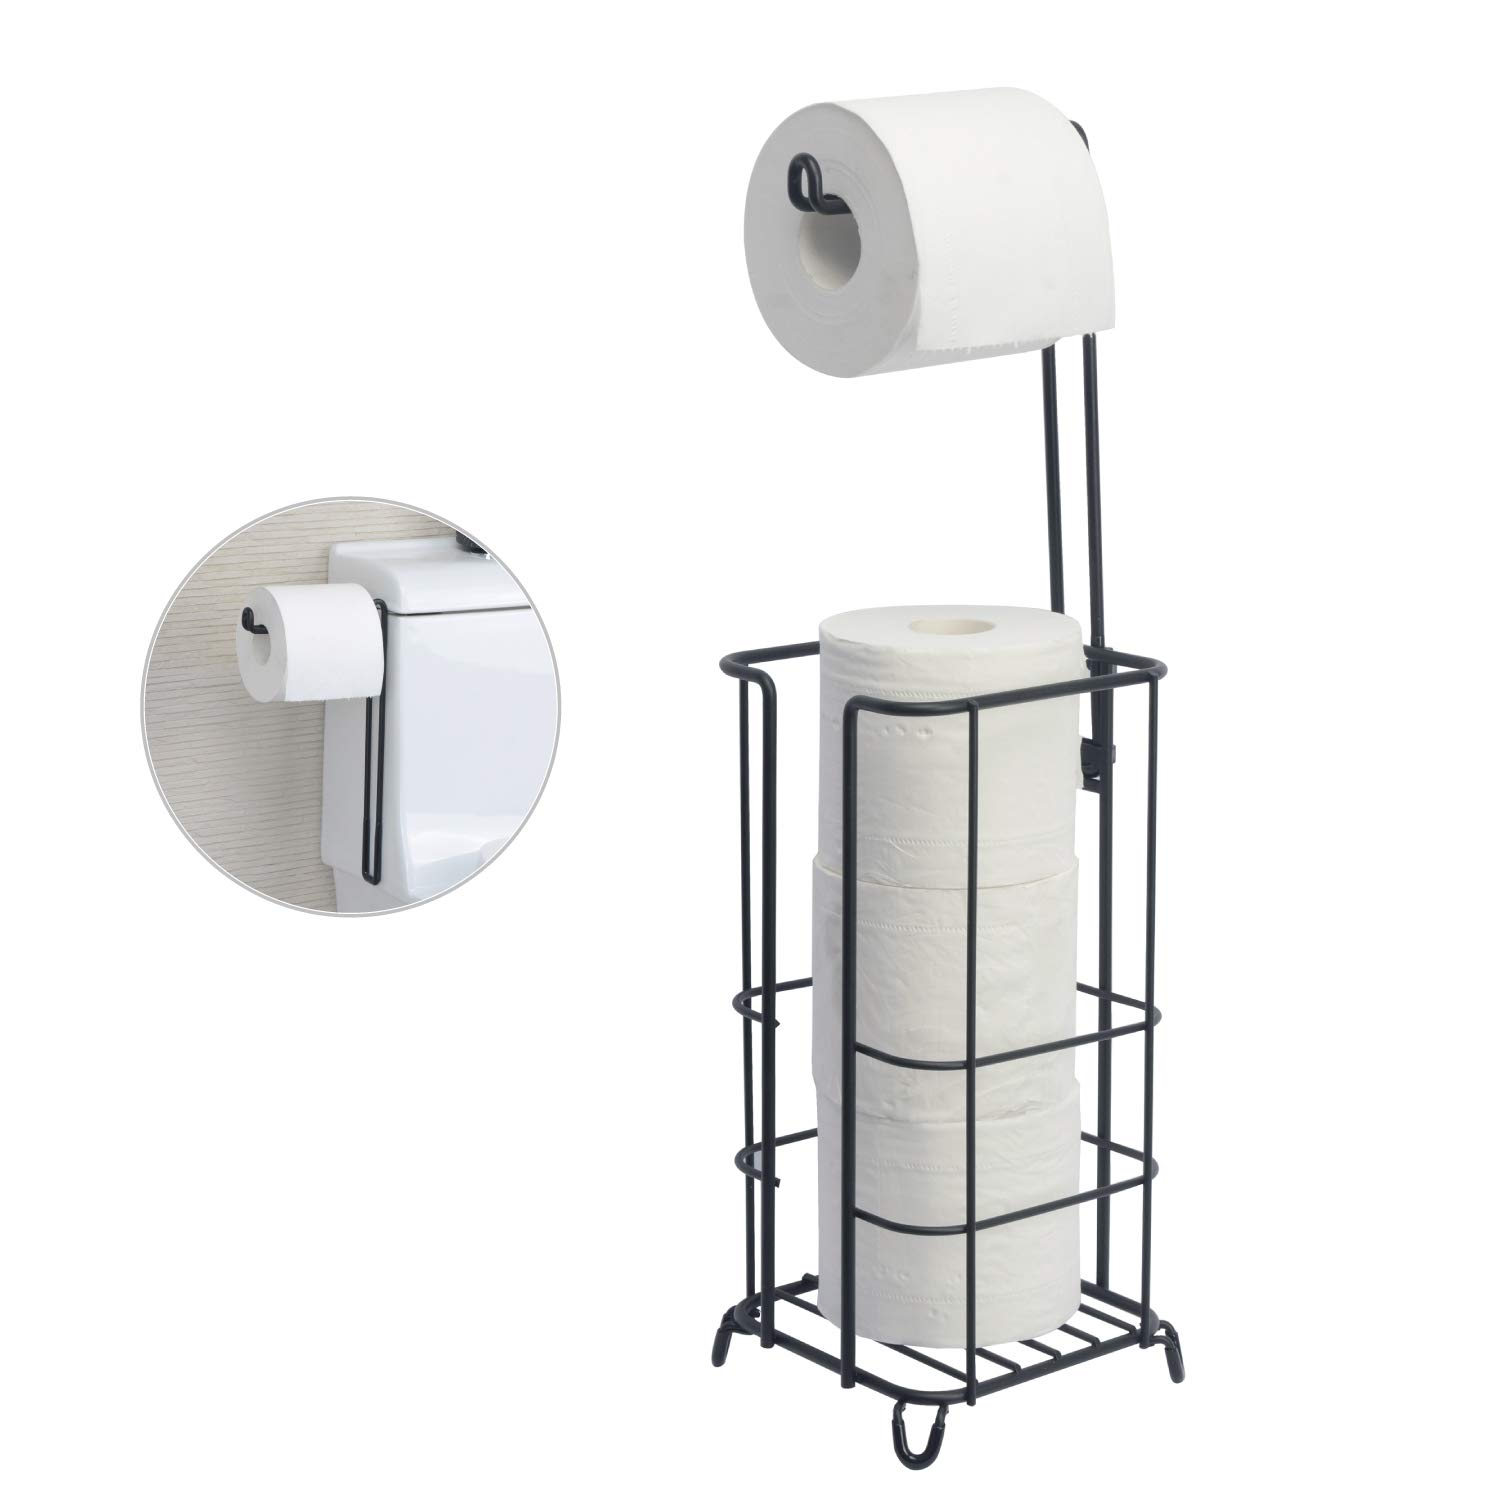 ZCCZ Toilet Paper Holder, Free Standing Bathroom Toilet Tissue Paper Roll Storage Holder Stand Shelf, Holds Mega Roll for Bathroom Storage Organizing, Black